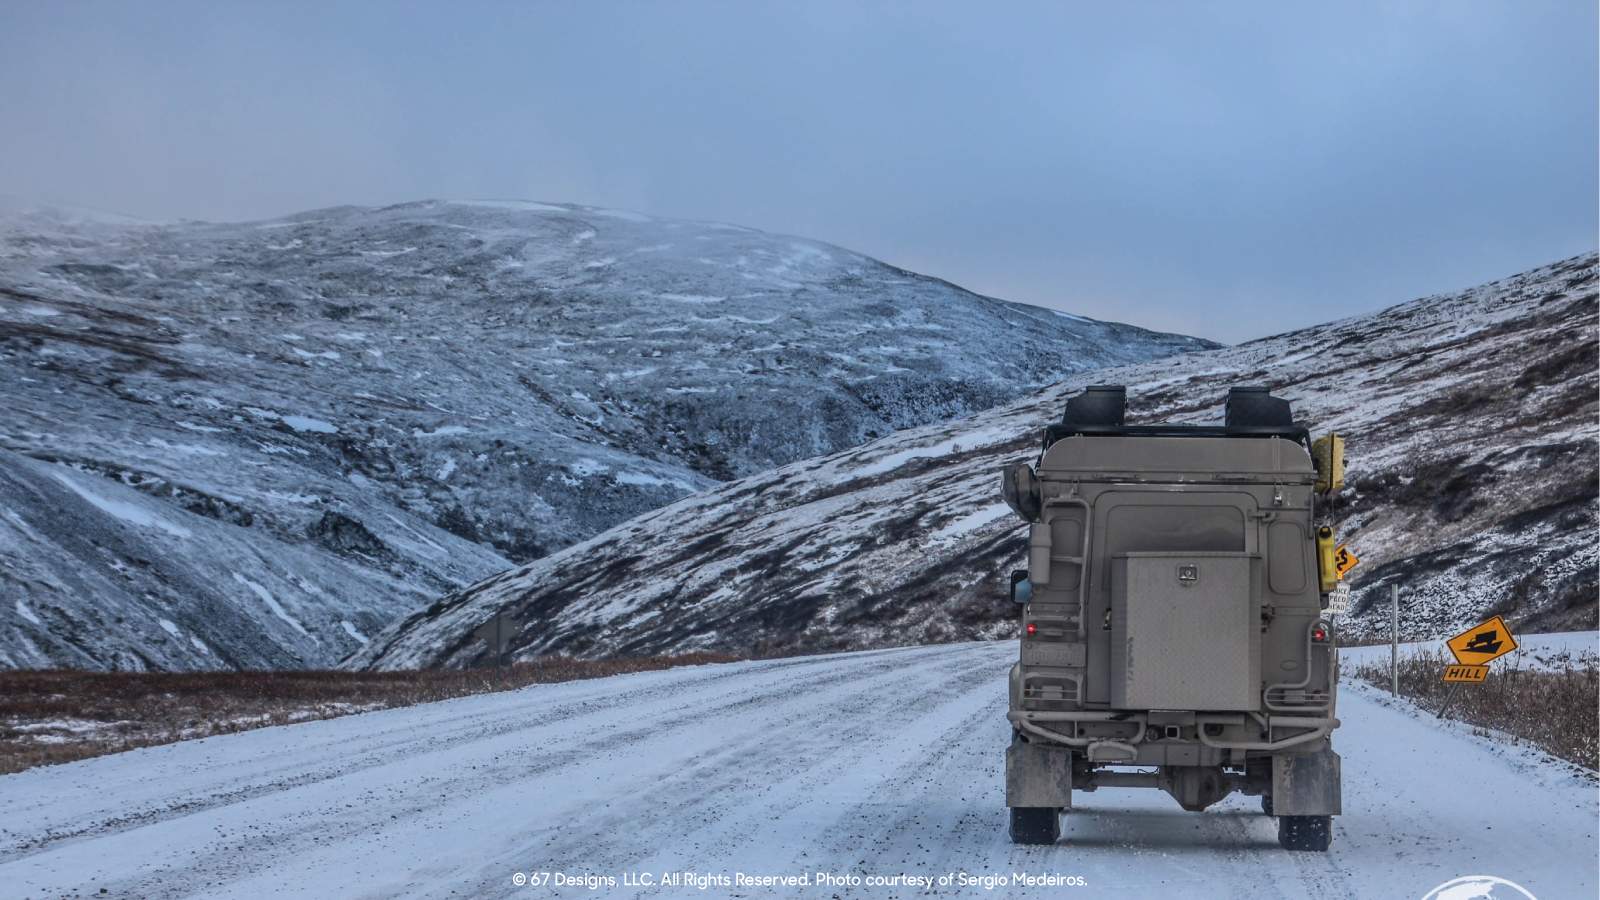 Land Rover in snowy conditions